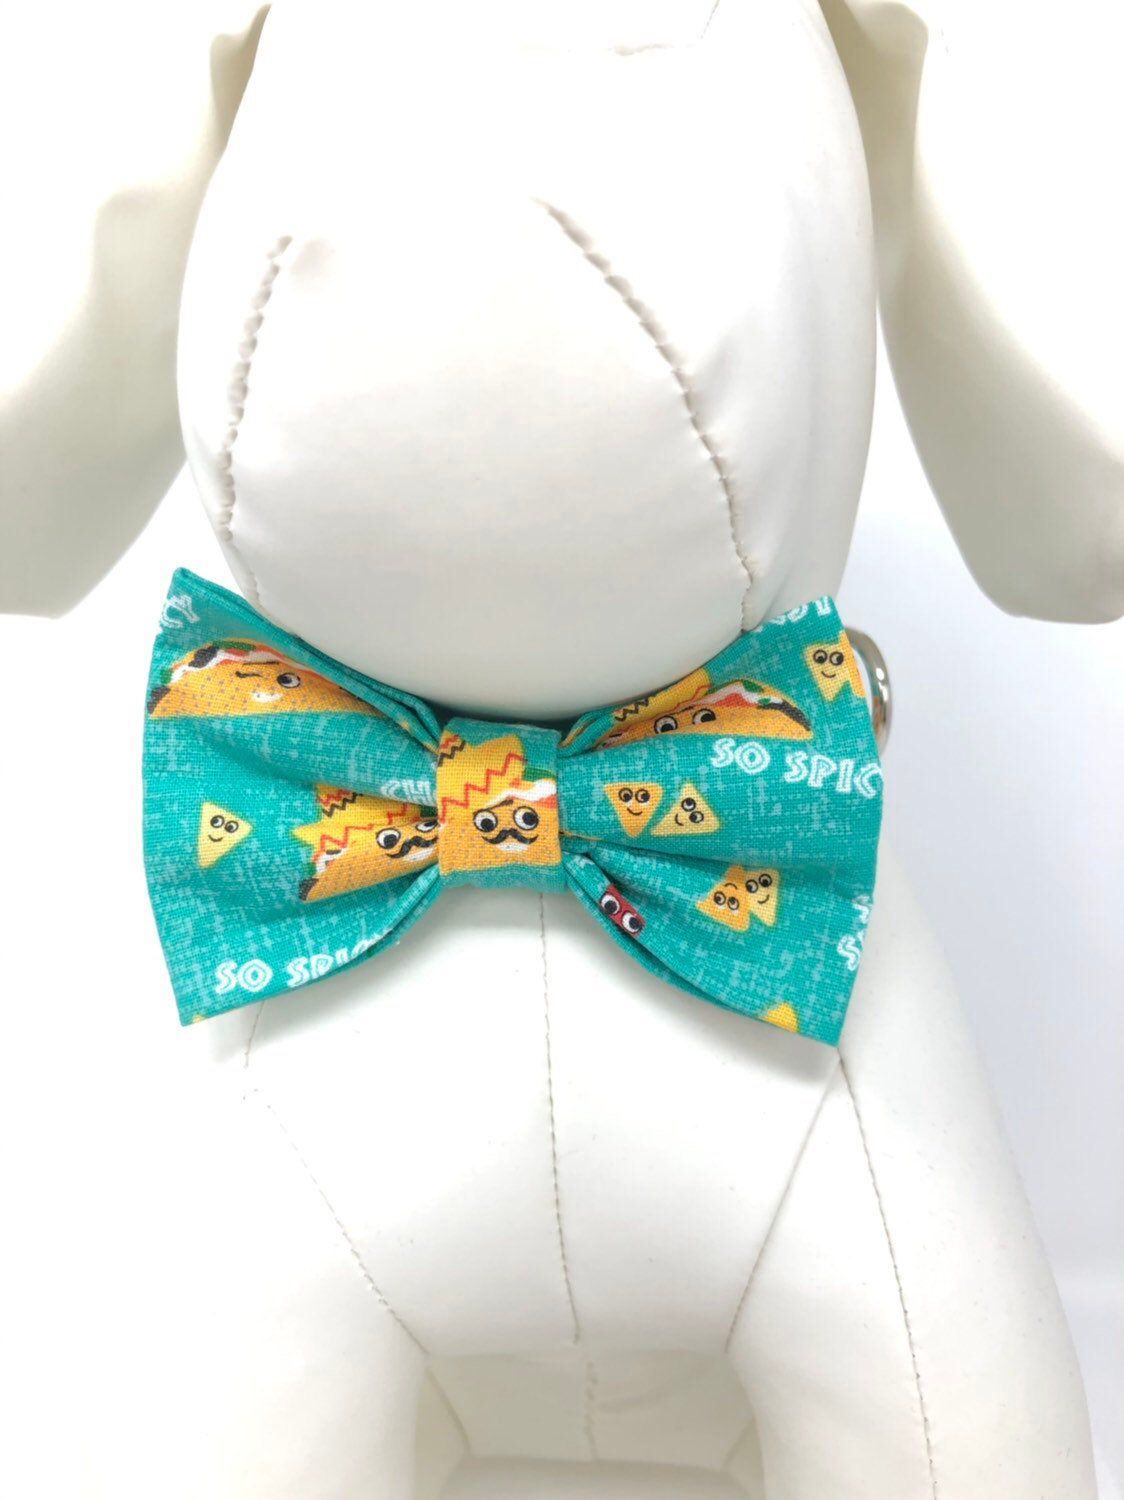 Taco Tuesday Hot and Spicy Chips and Salsa Sombrero Hat and Tacos Aqua Green Yellow and Red Bow Ties and Collars for Dogs, Free ship in USA #pictureplacemeant